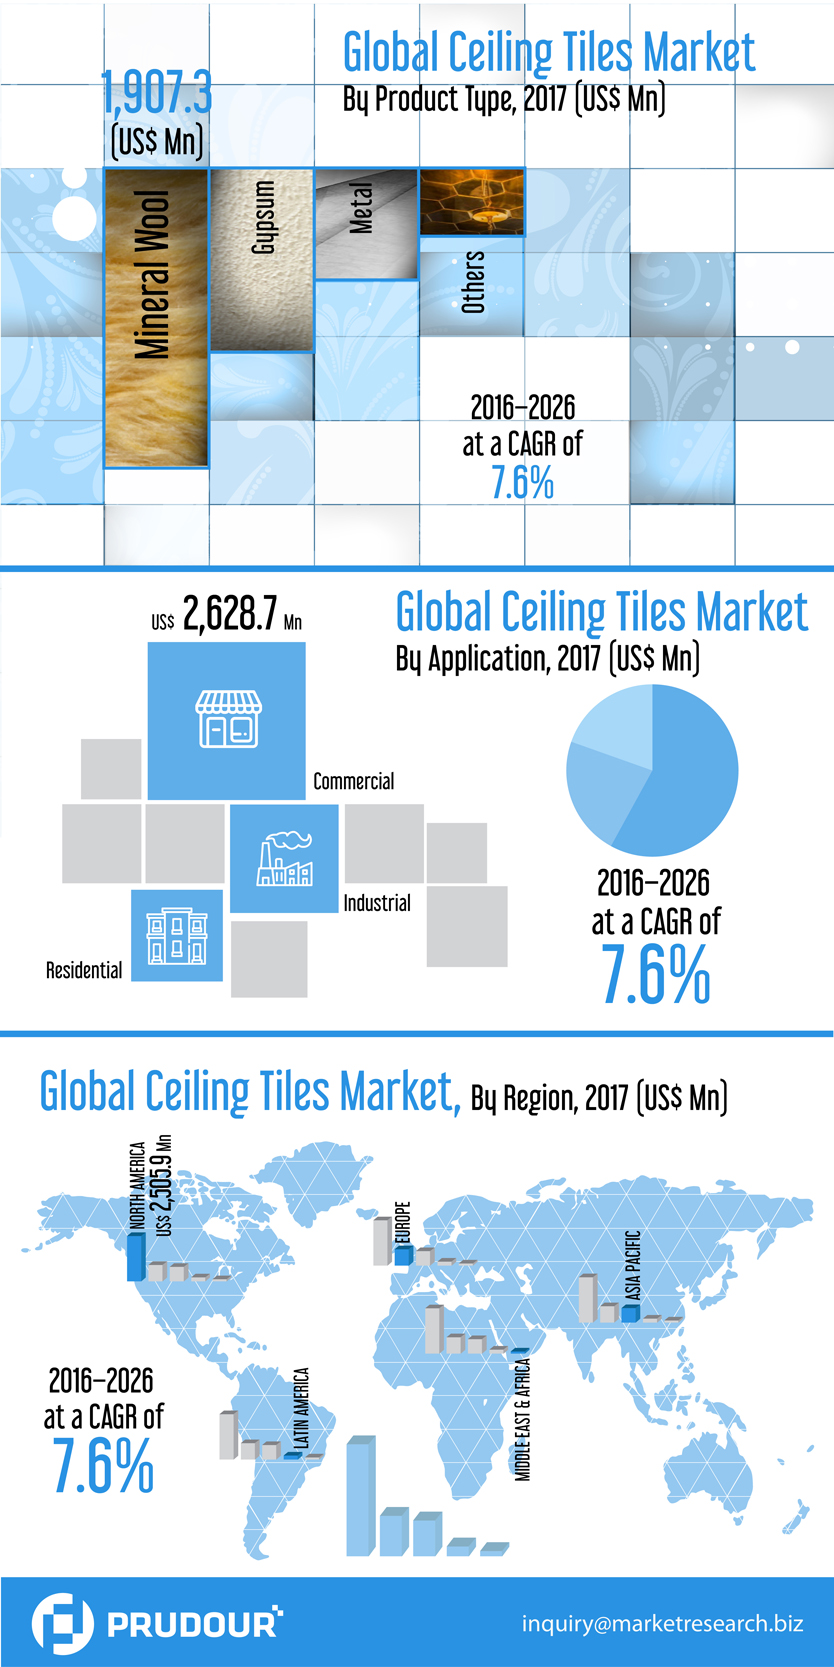 To register CAGR Of 7%: Global Ceiling Tiles Market about to hit CAGR of 7% from 2017 to 2026